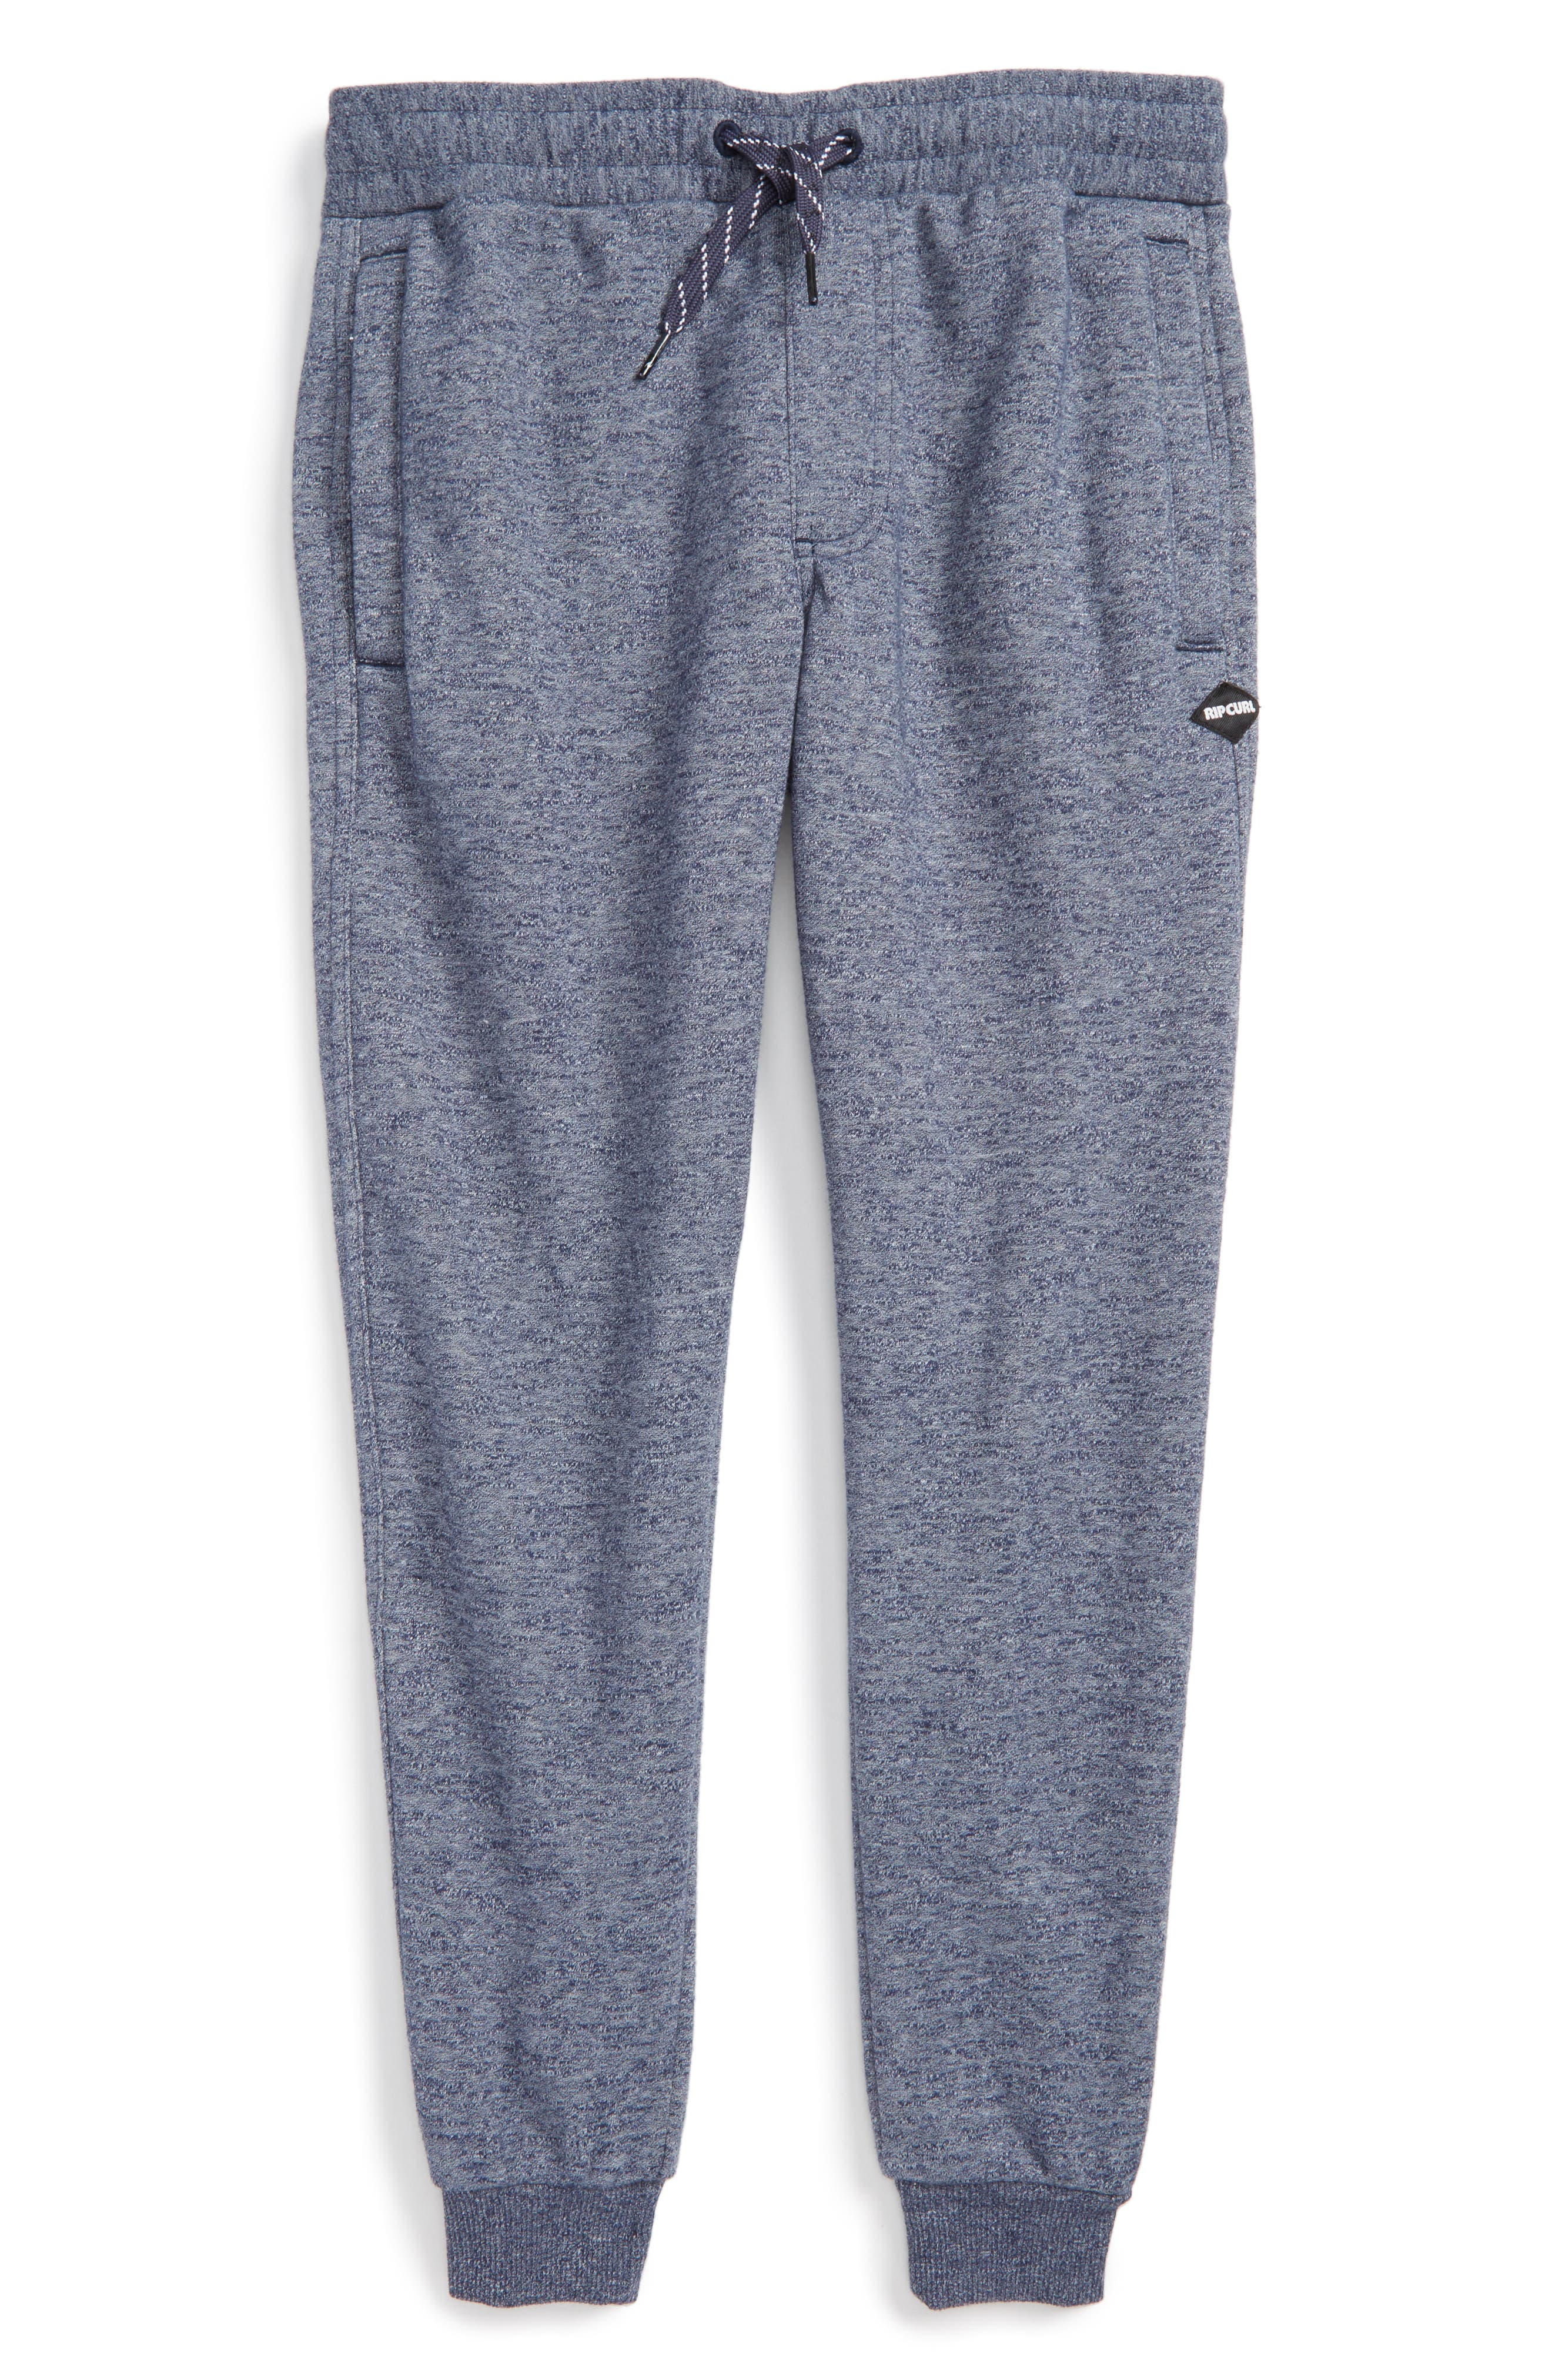 Alternate Image 1 Selected - Rip Curl Destination Fleece Sweatpants (Big Boys)